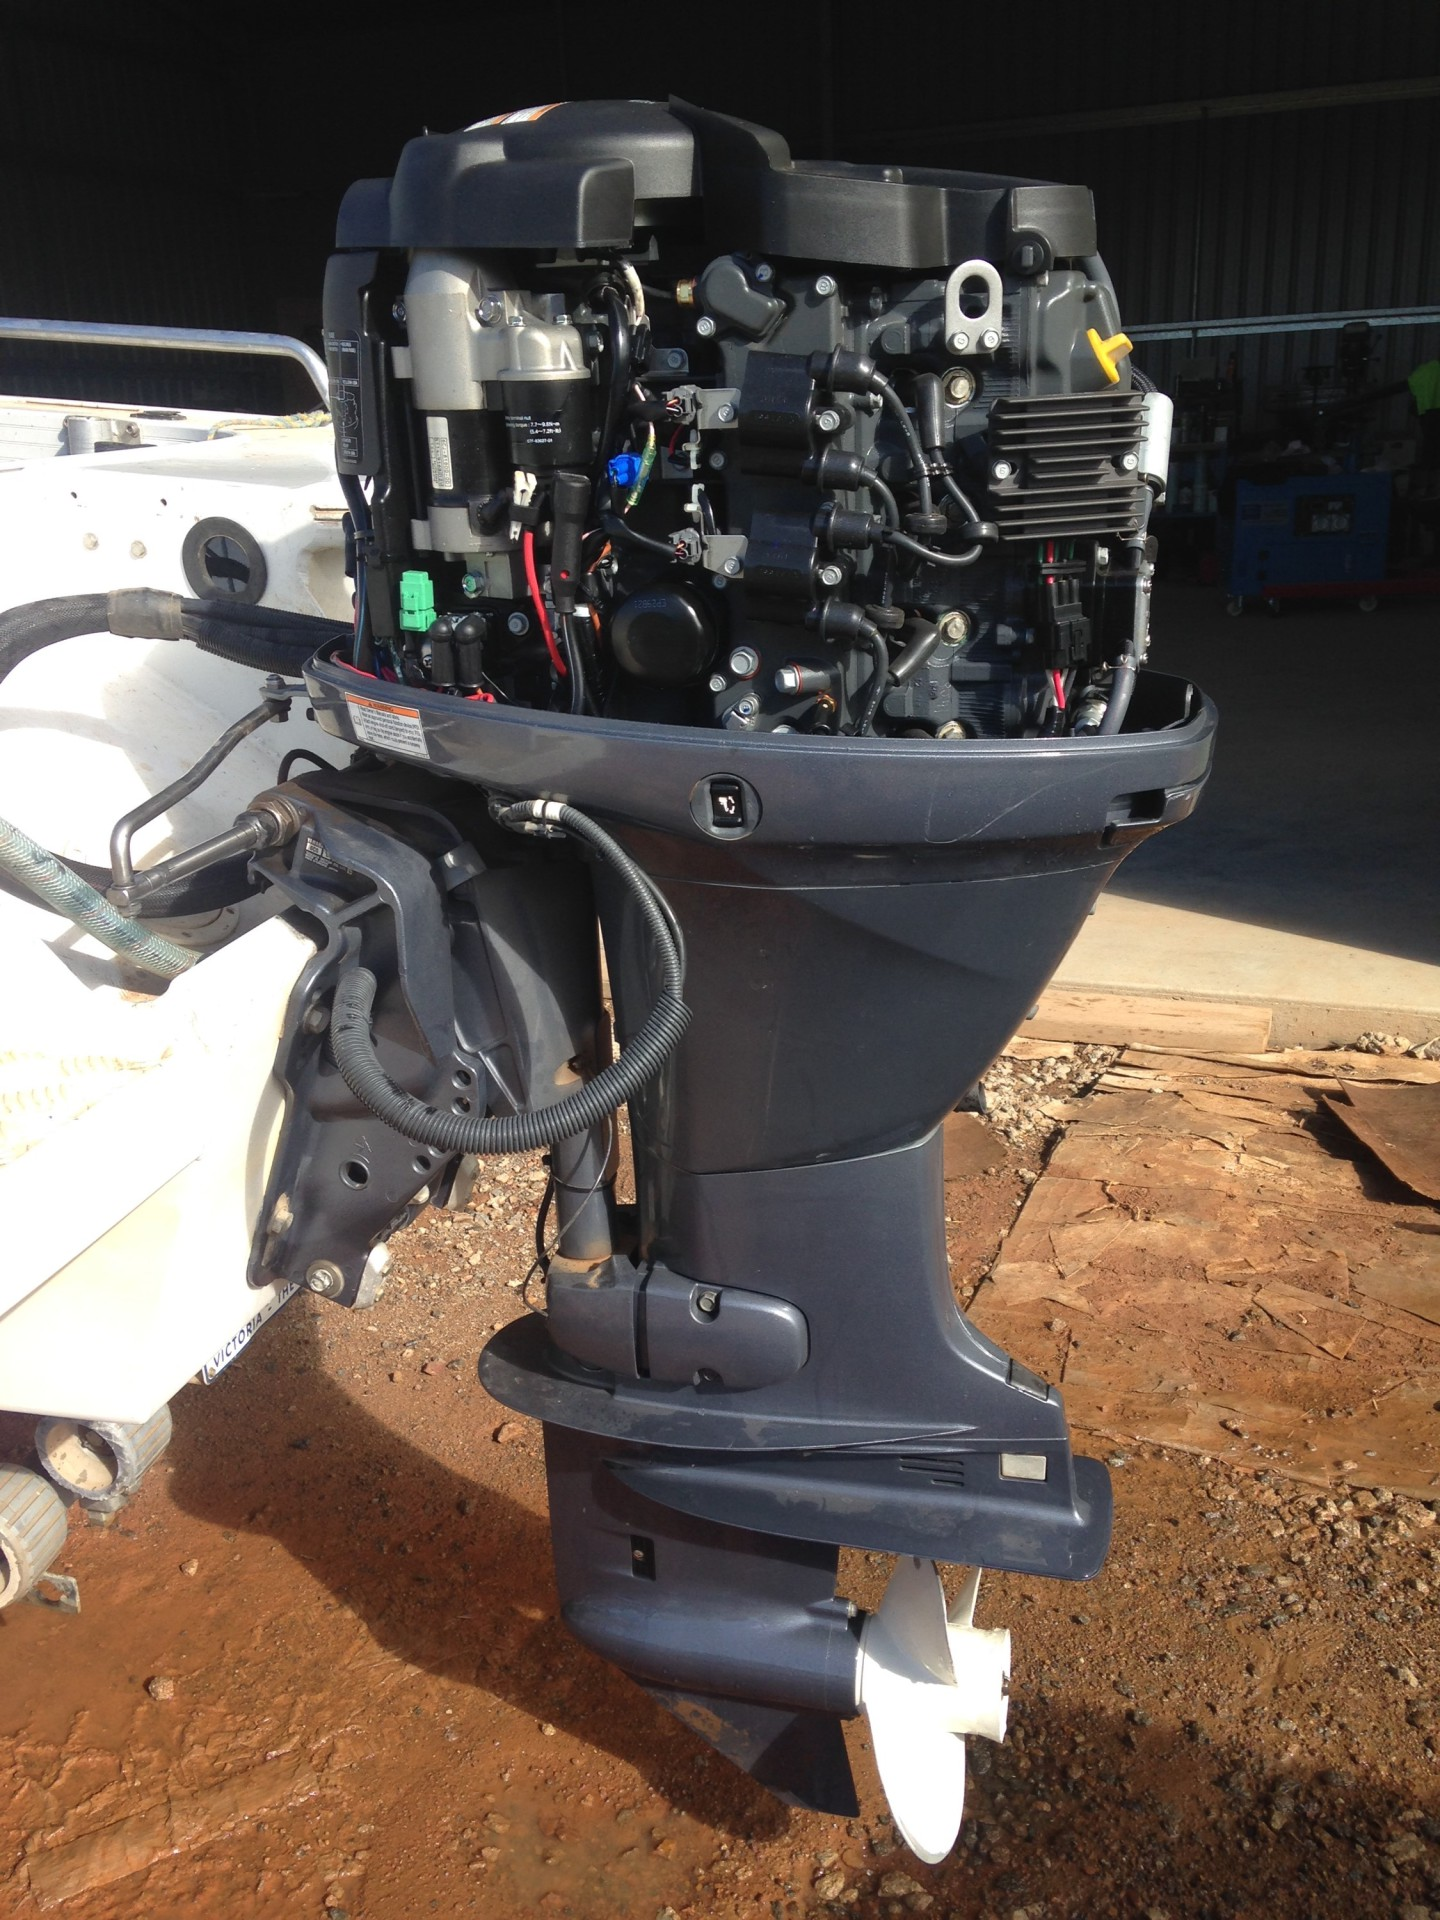 Boat Repairs, Statewide Marine Services, Mansfield Victoria